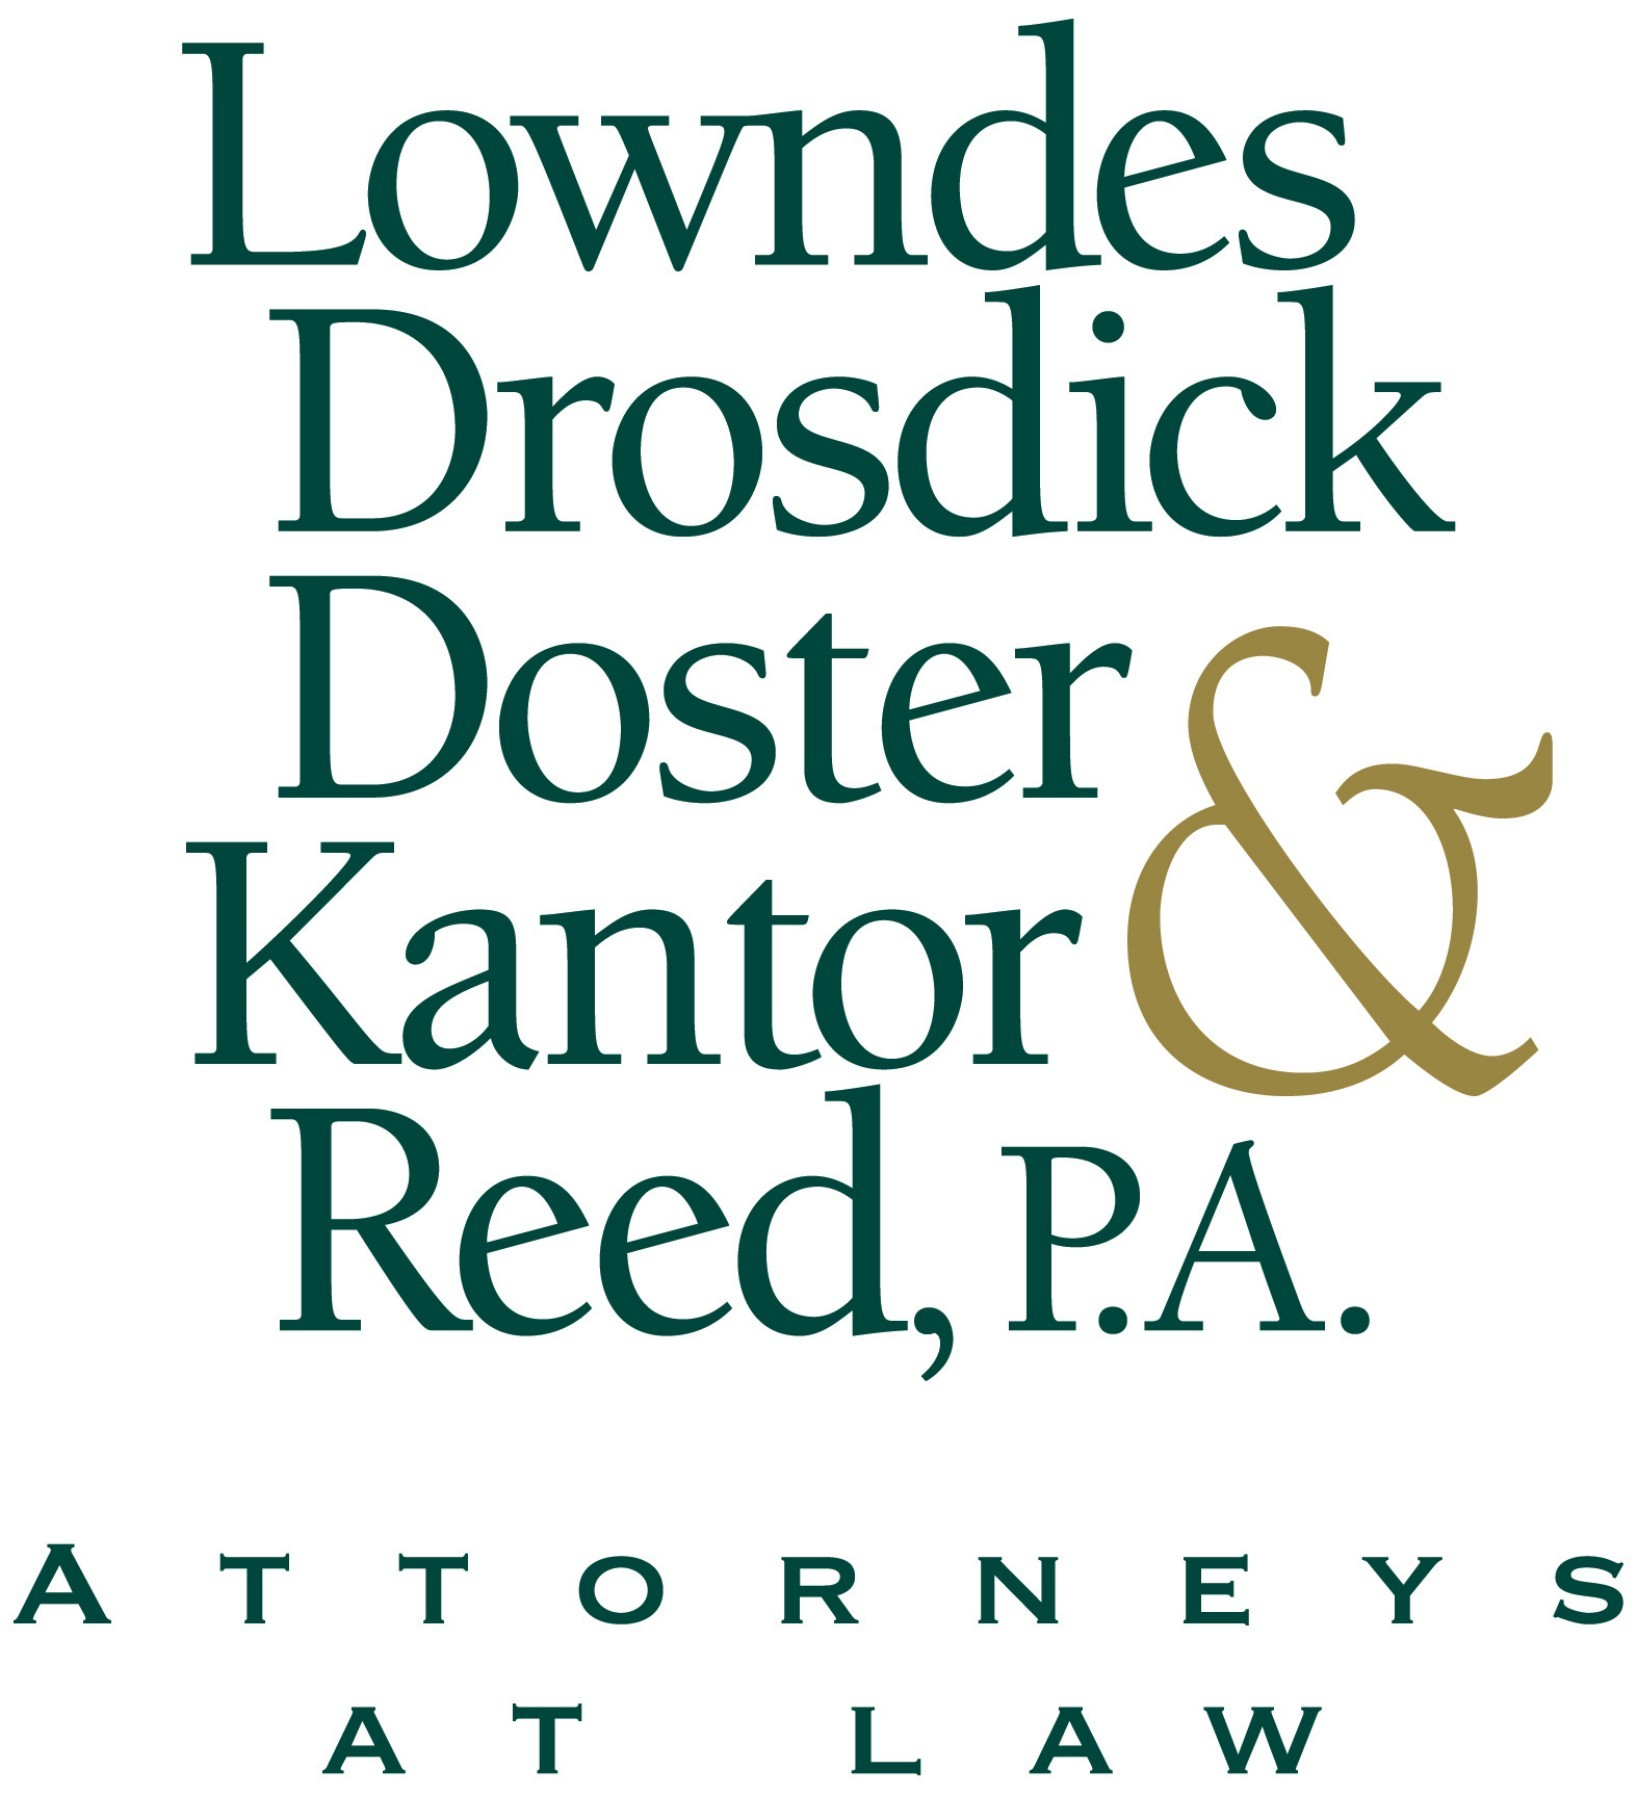 Lowndes, Drosdick, Doster, Kantor & Reed